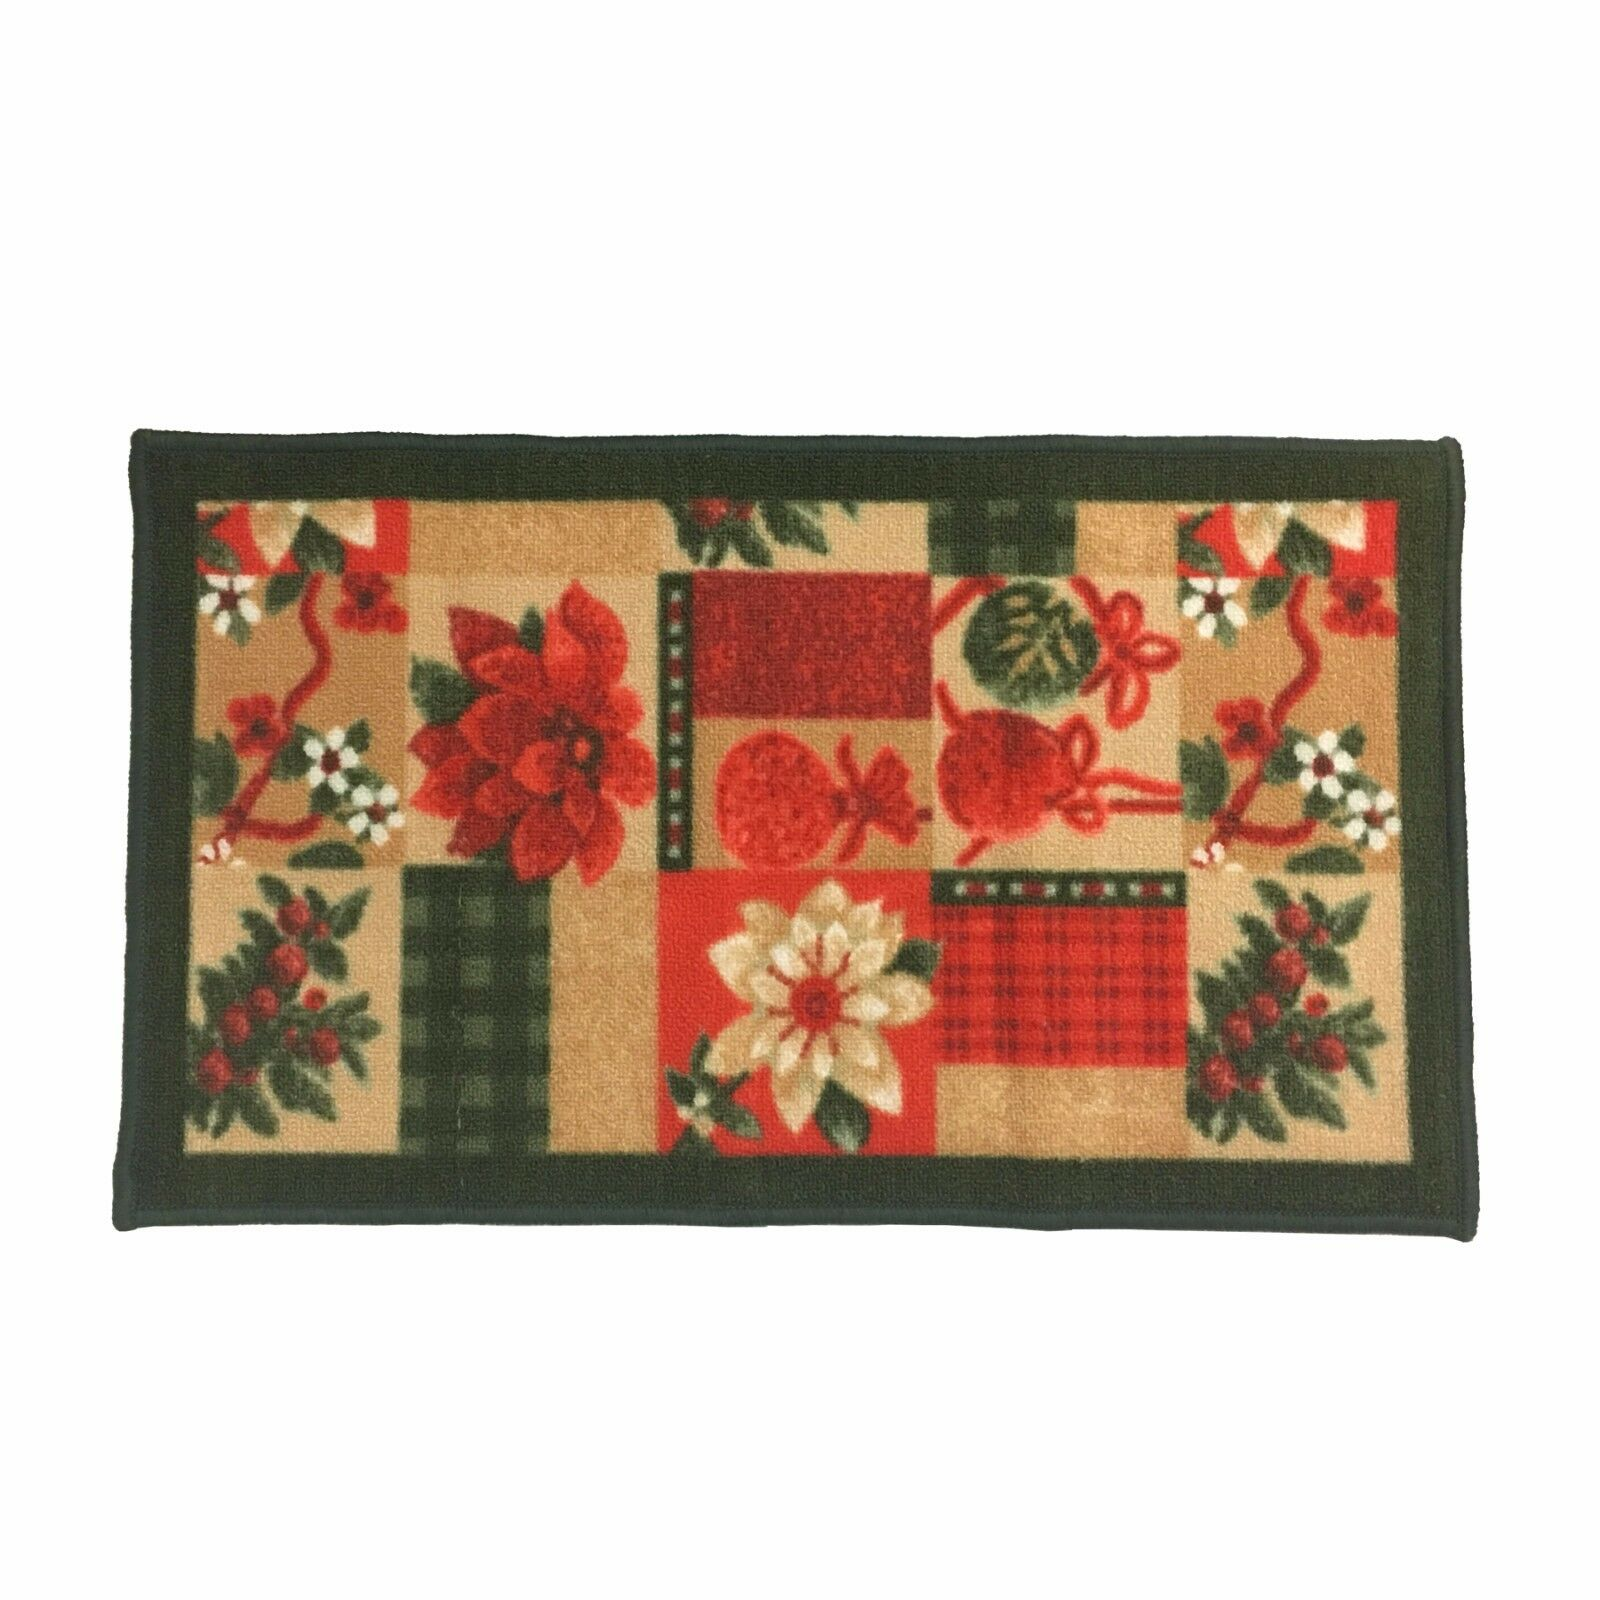 Details About Christmas Design Kitchen Rug Latex Back Santa Reindeer Snowman Poinsettia